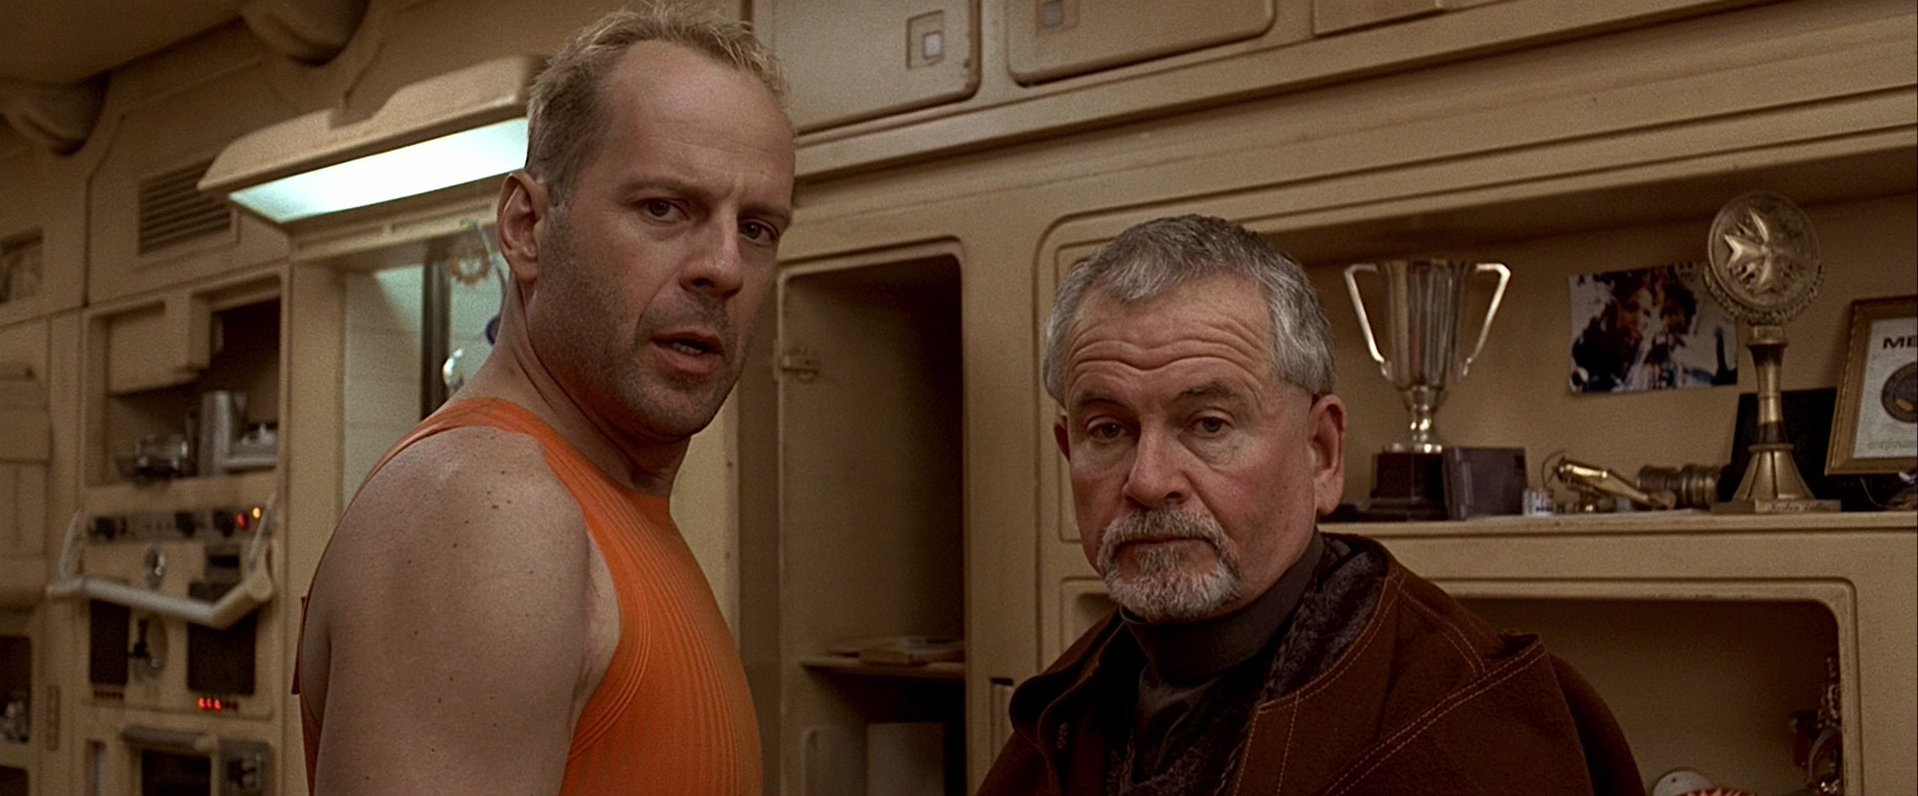 fifth element film analysis My comfort in the fifth element comes from this active viewership i've been asked to, and allowed to, explore dallas's apartment and all of the other locations within the film i've gotten to know each character by their dress and manner, and not simply told what to look at.